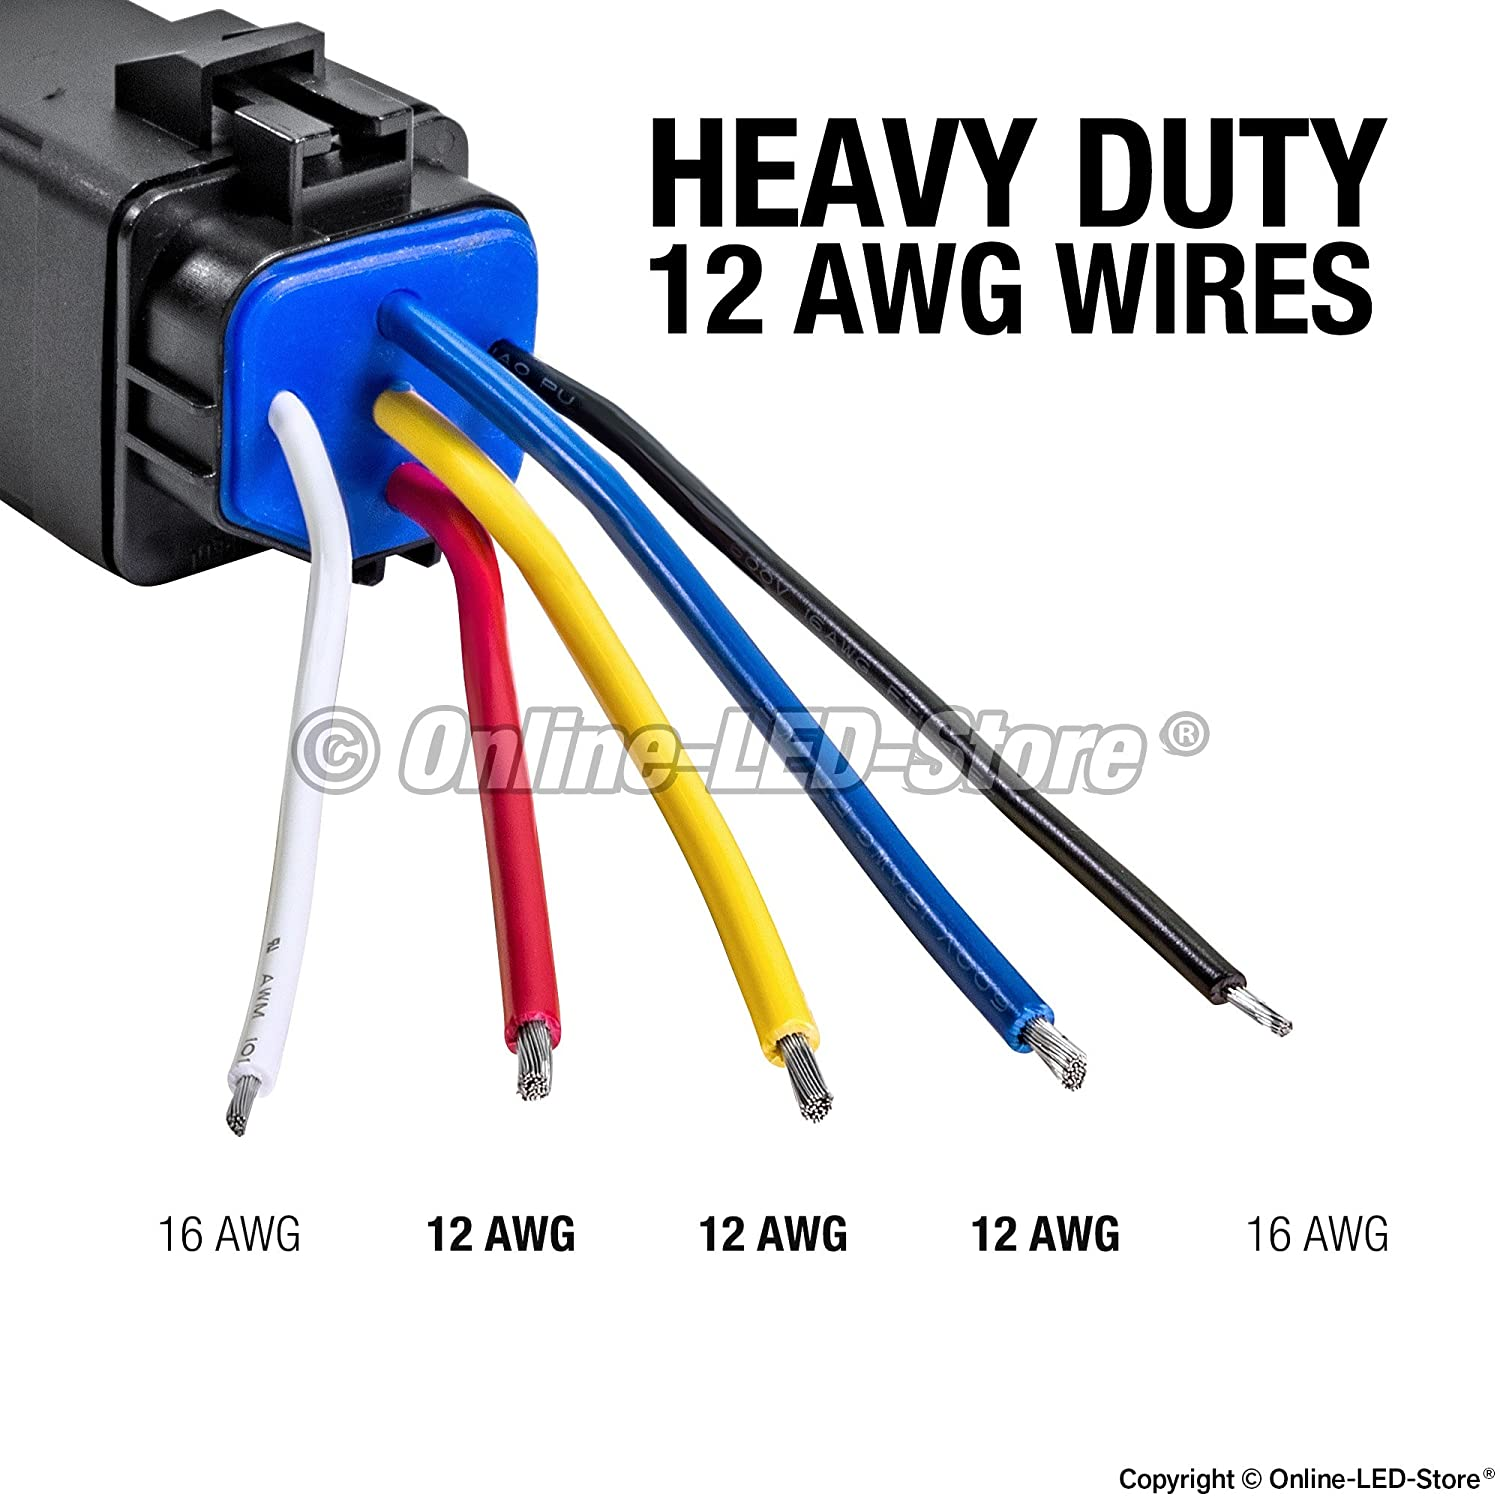 81s06fCNHoL._SL1500_ amazon com ols 40 30 amp waterproof relay switch harness set Wiring Harness Diagram at panicattacktreatment.co